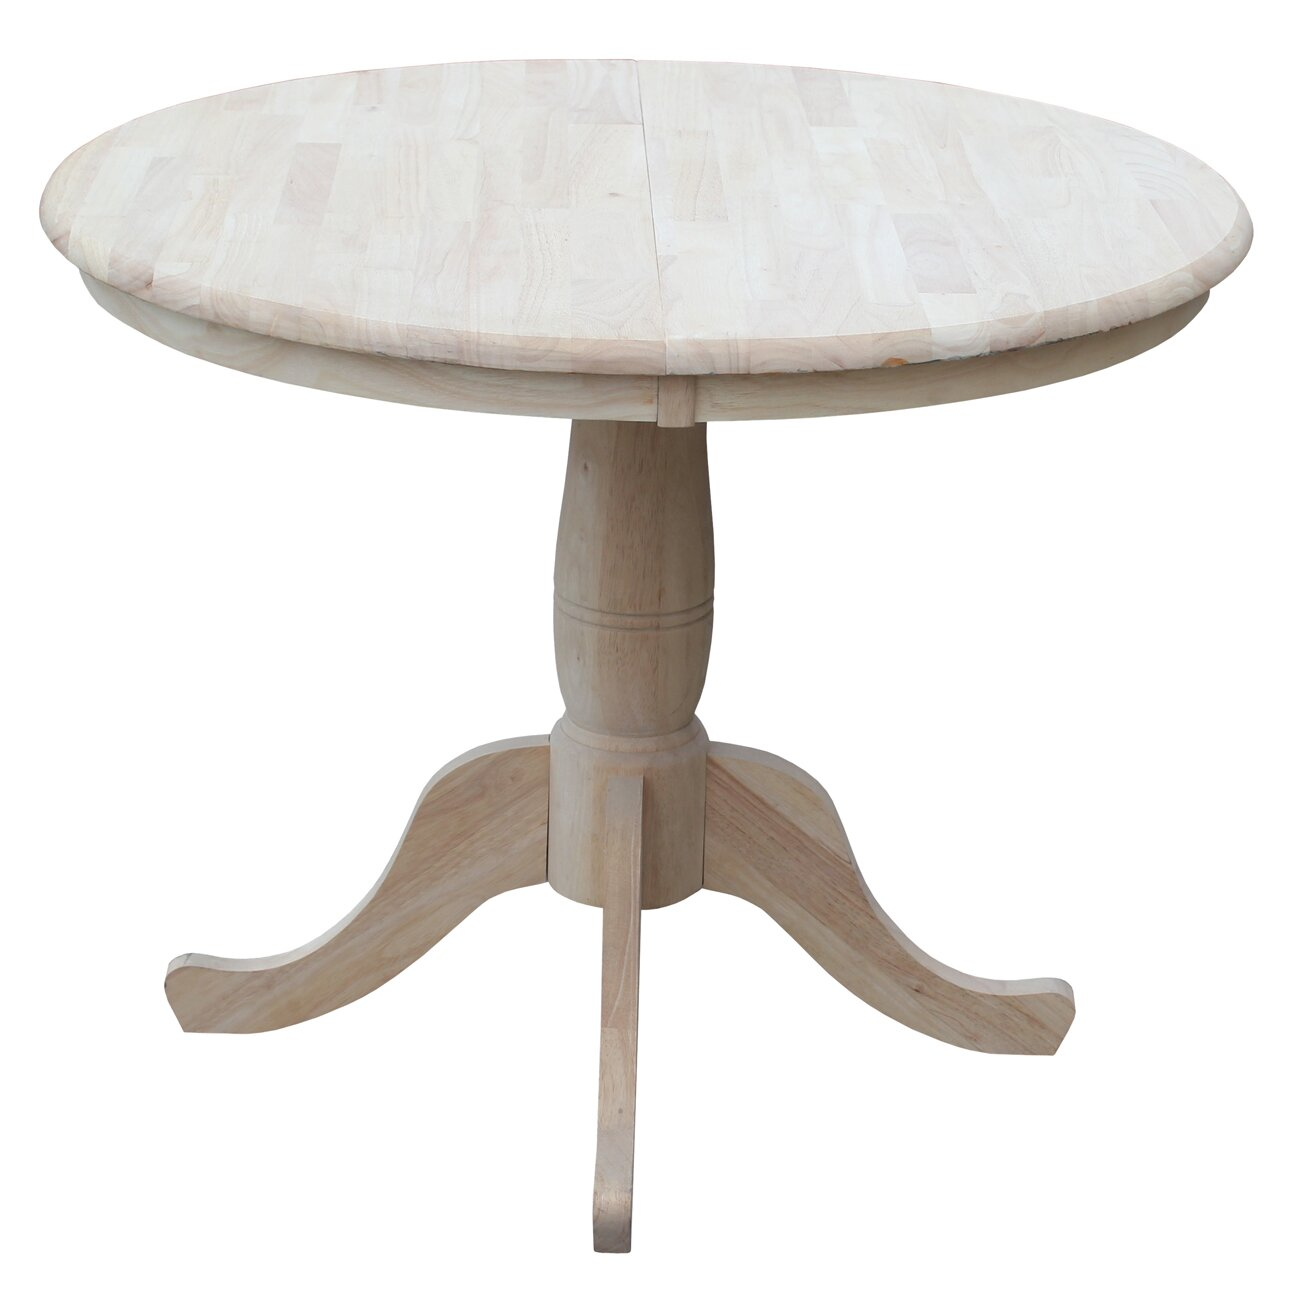 August grove 36 extendable round pedestal dining table - Table a manger retractable ...